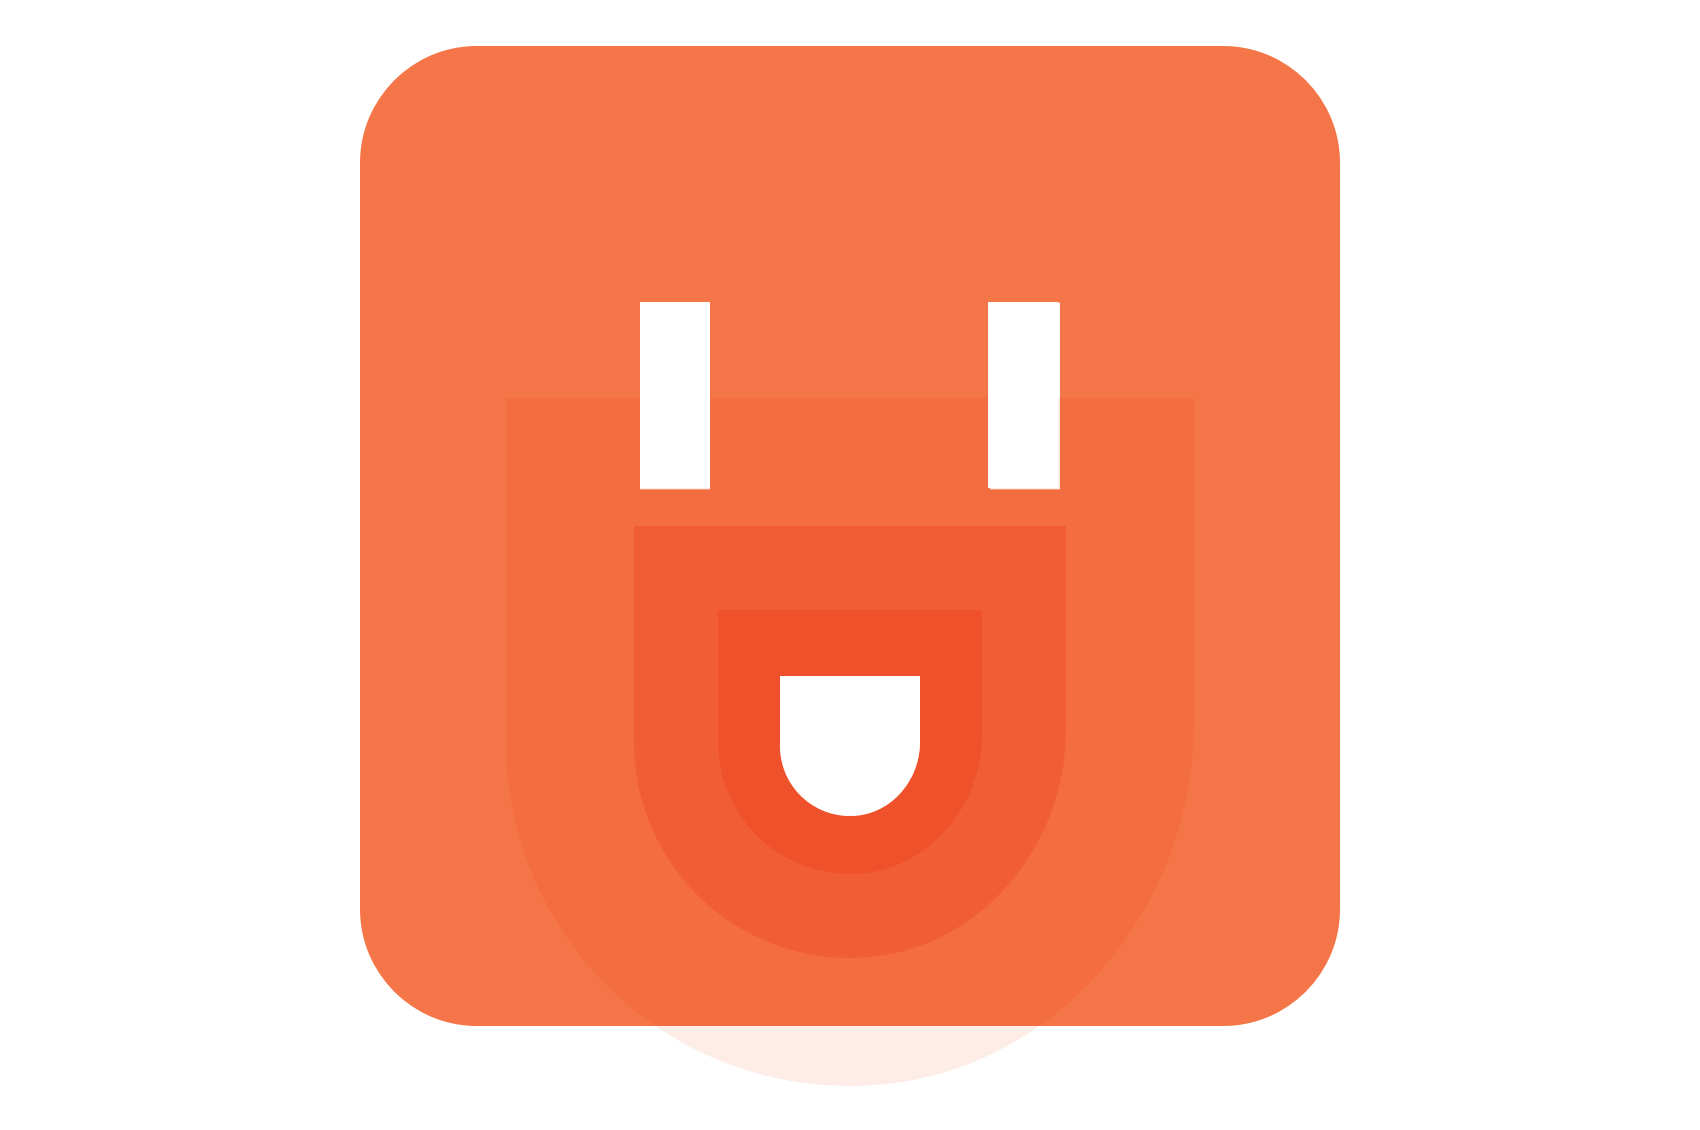 An abstract, smiling power outlet, signifying a positive interaction with an API.